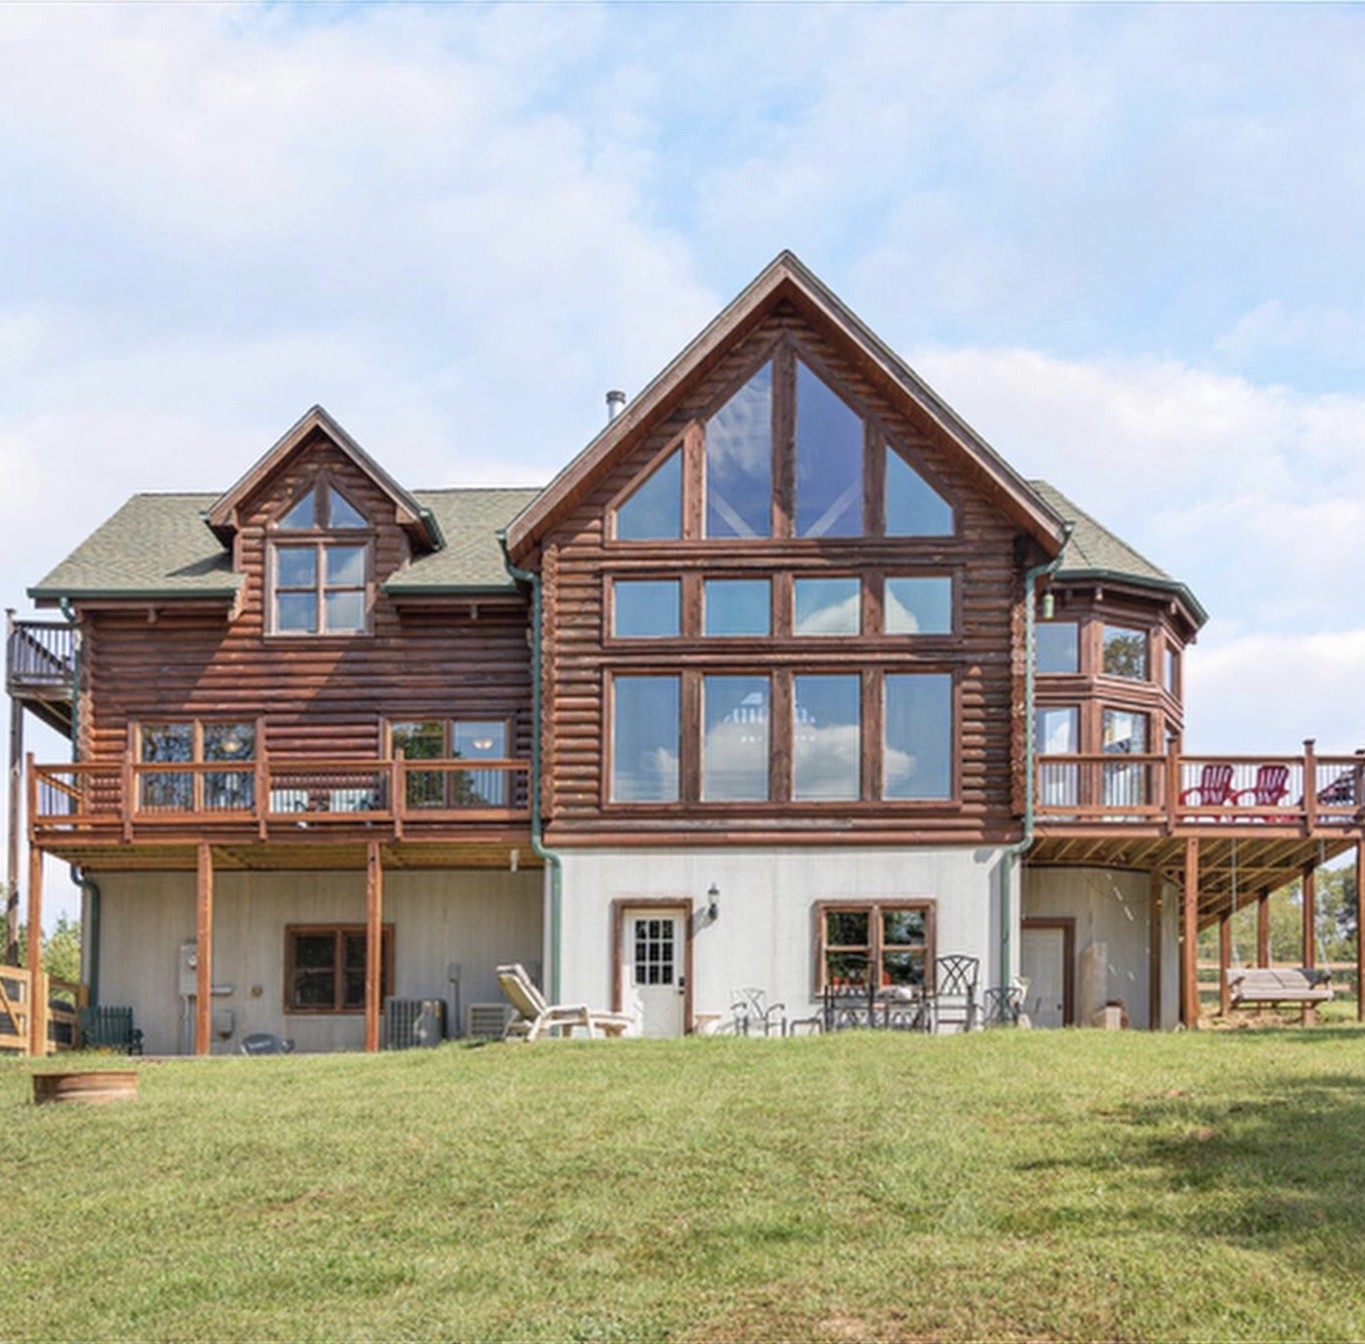 1249A Reese Rd, Bethpage, TN 37022 - Bethpage, TN real estate listing